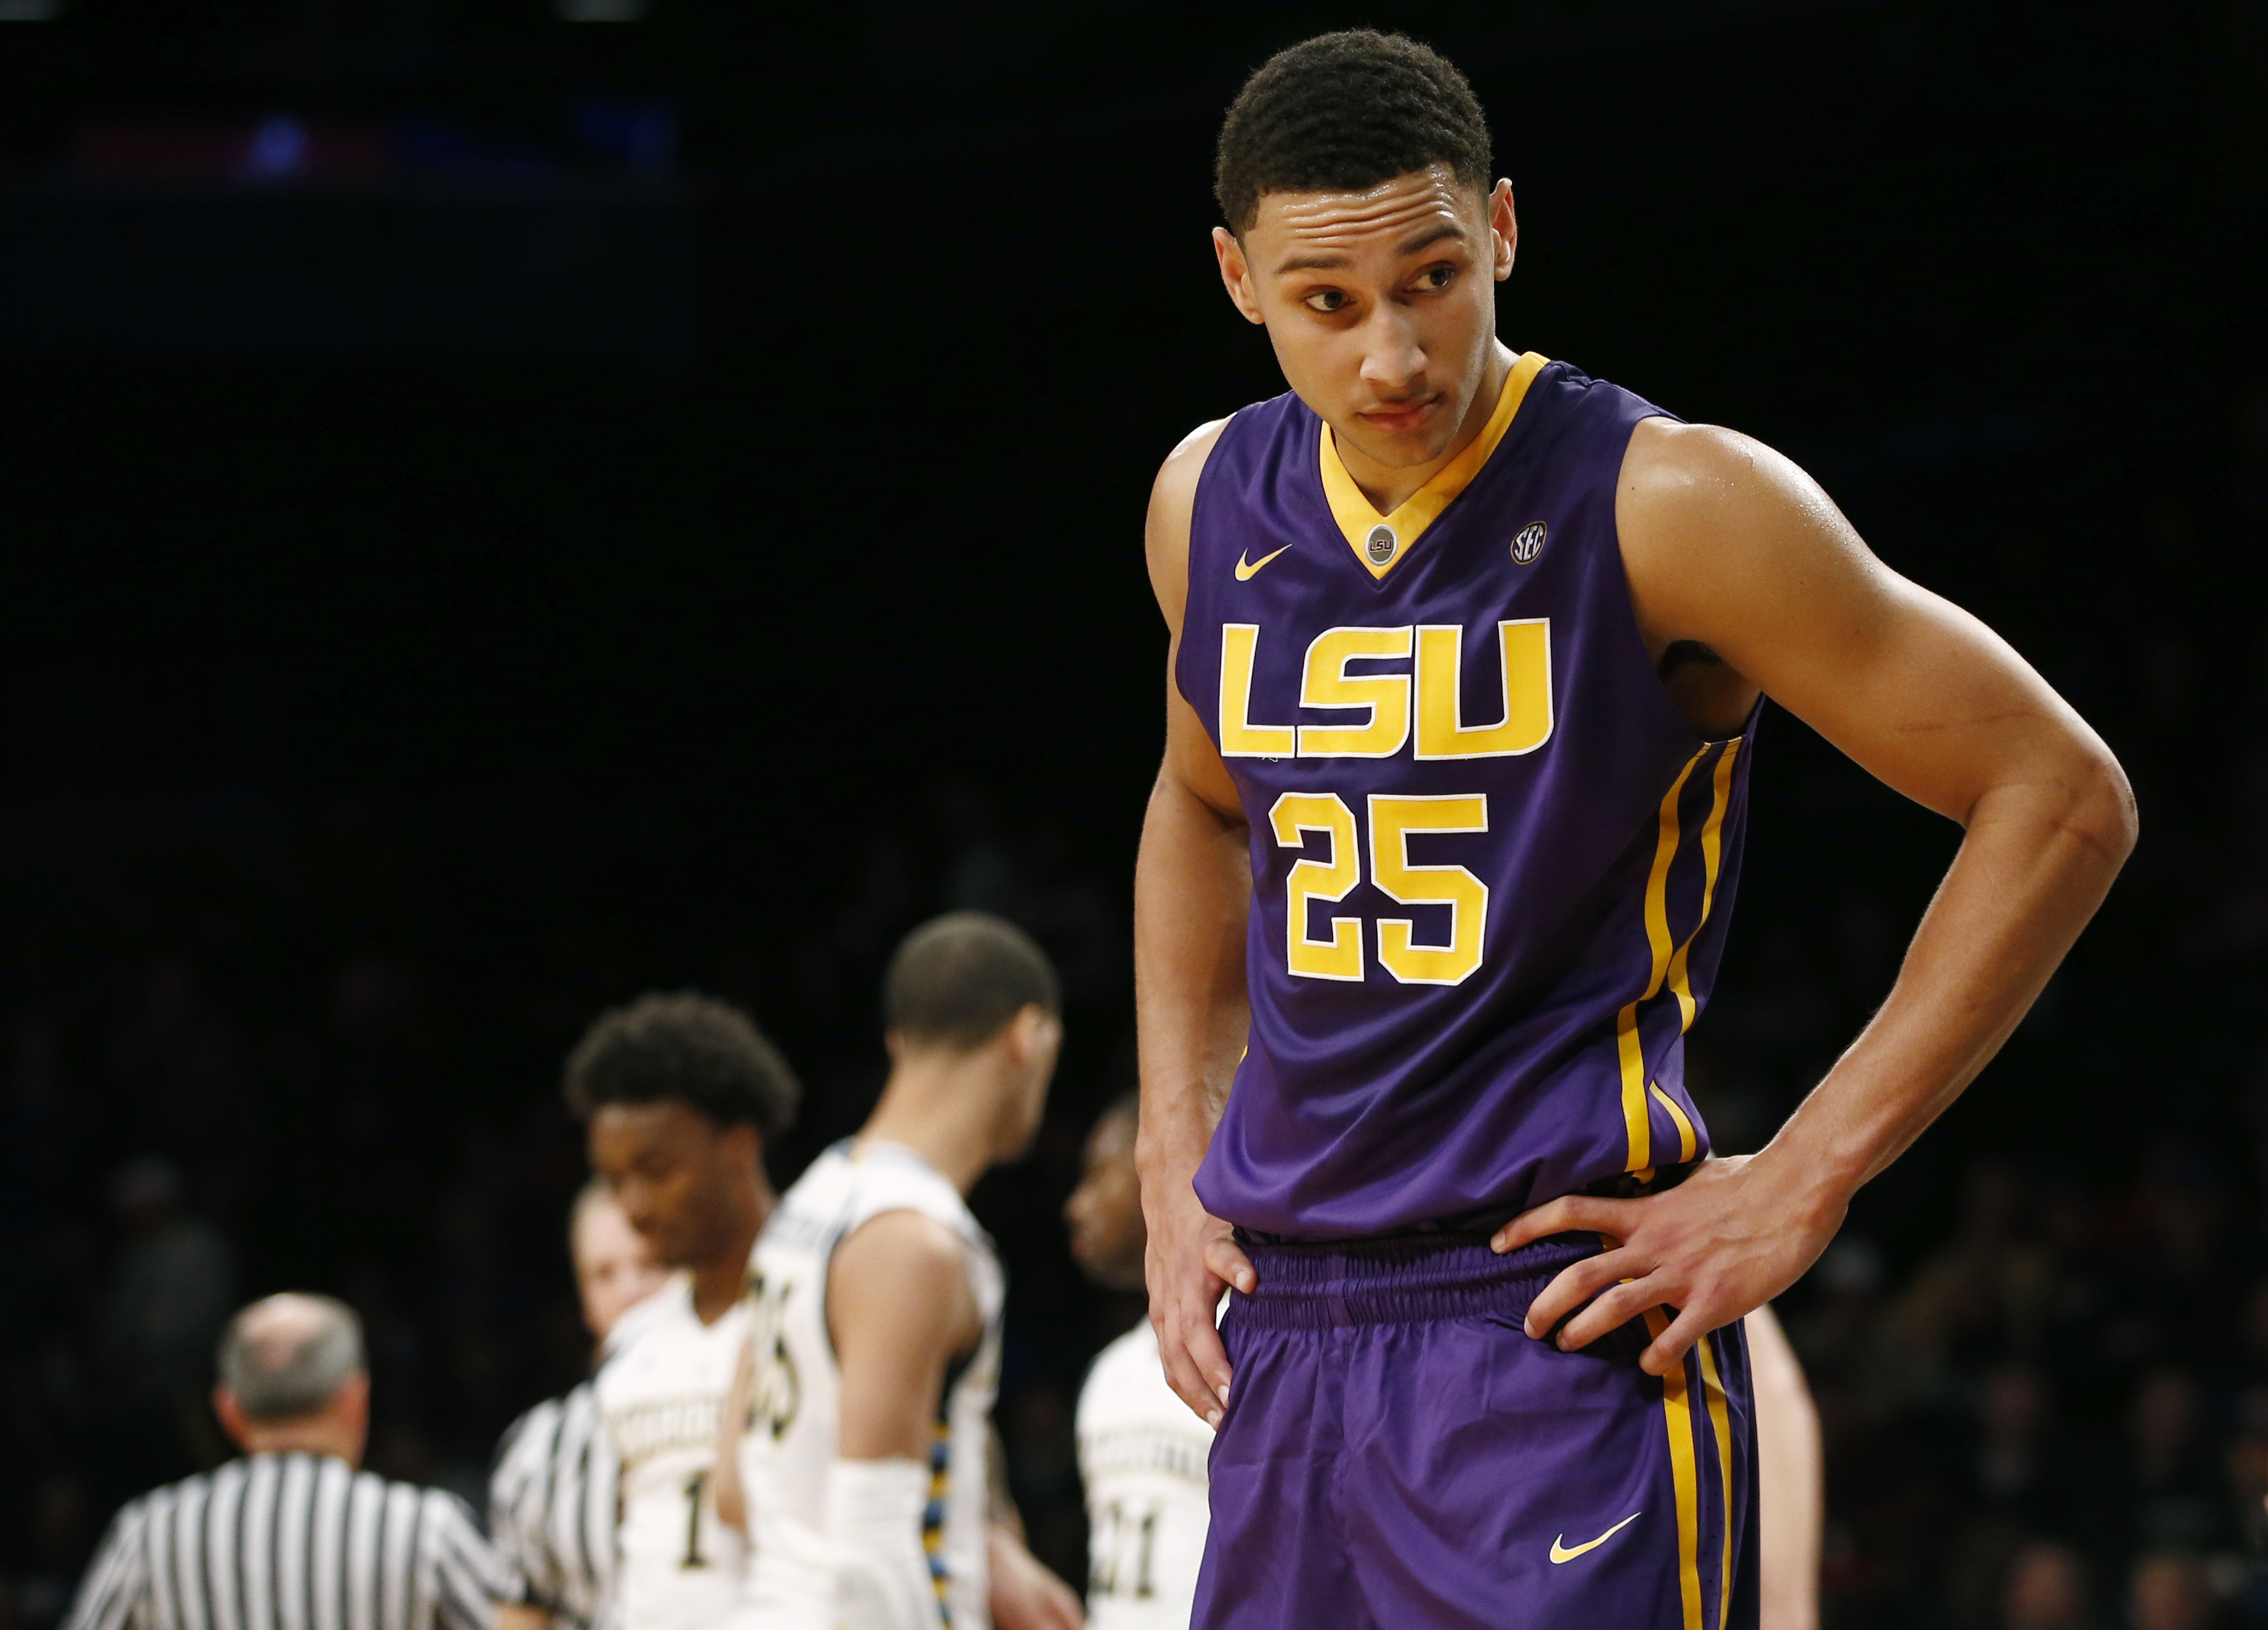 LSU forward Ben Simmons (25) reacts during the second half of the Legends Classic semifinal against Marquette in an NCAA college basketball game Monday, Nov. 23, 2015, in New York.  Marquette upset LSU 81-80. (AP Photo/Kathy Willens)